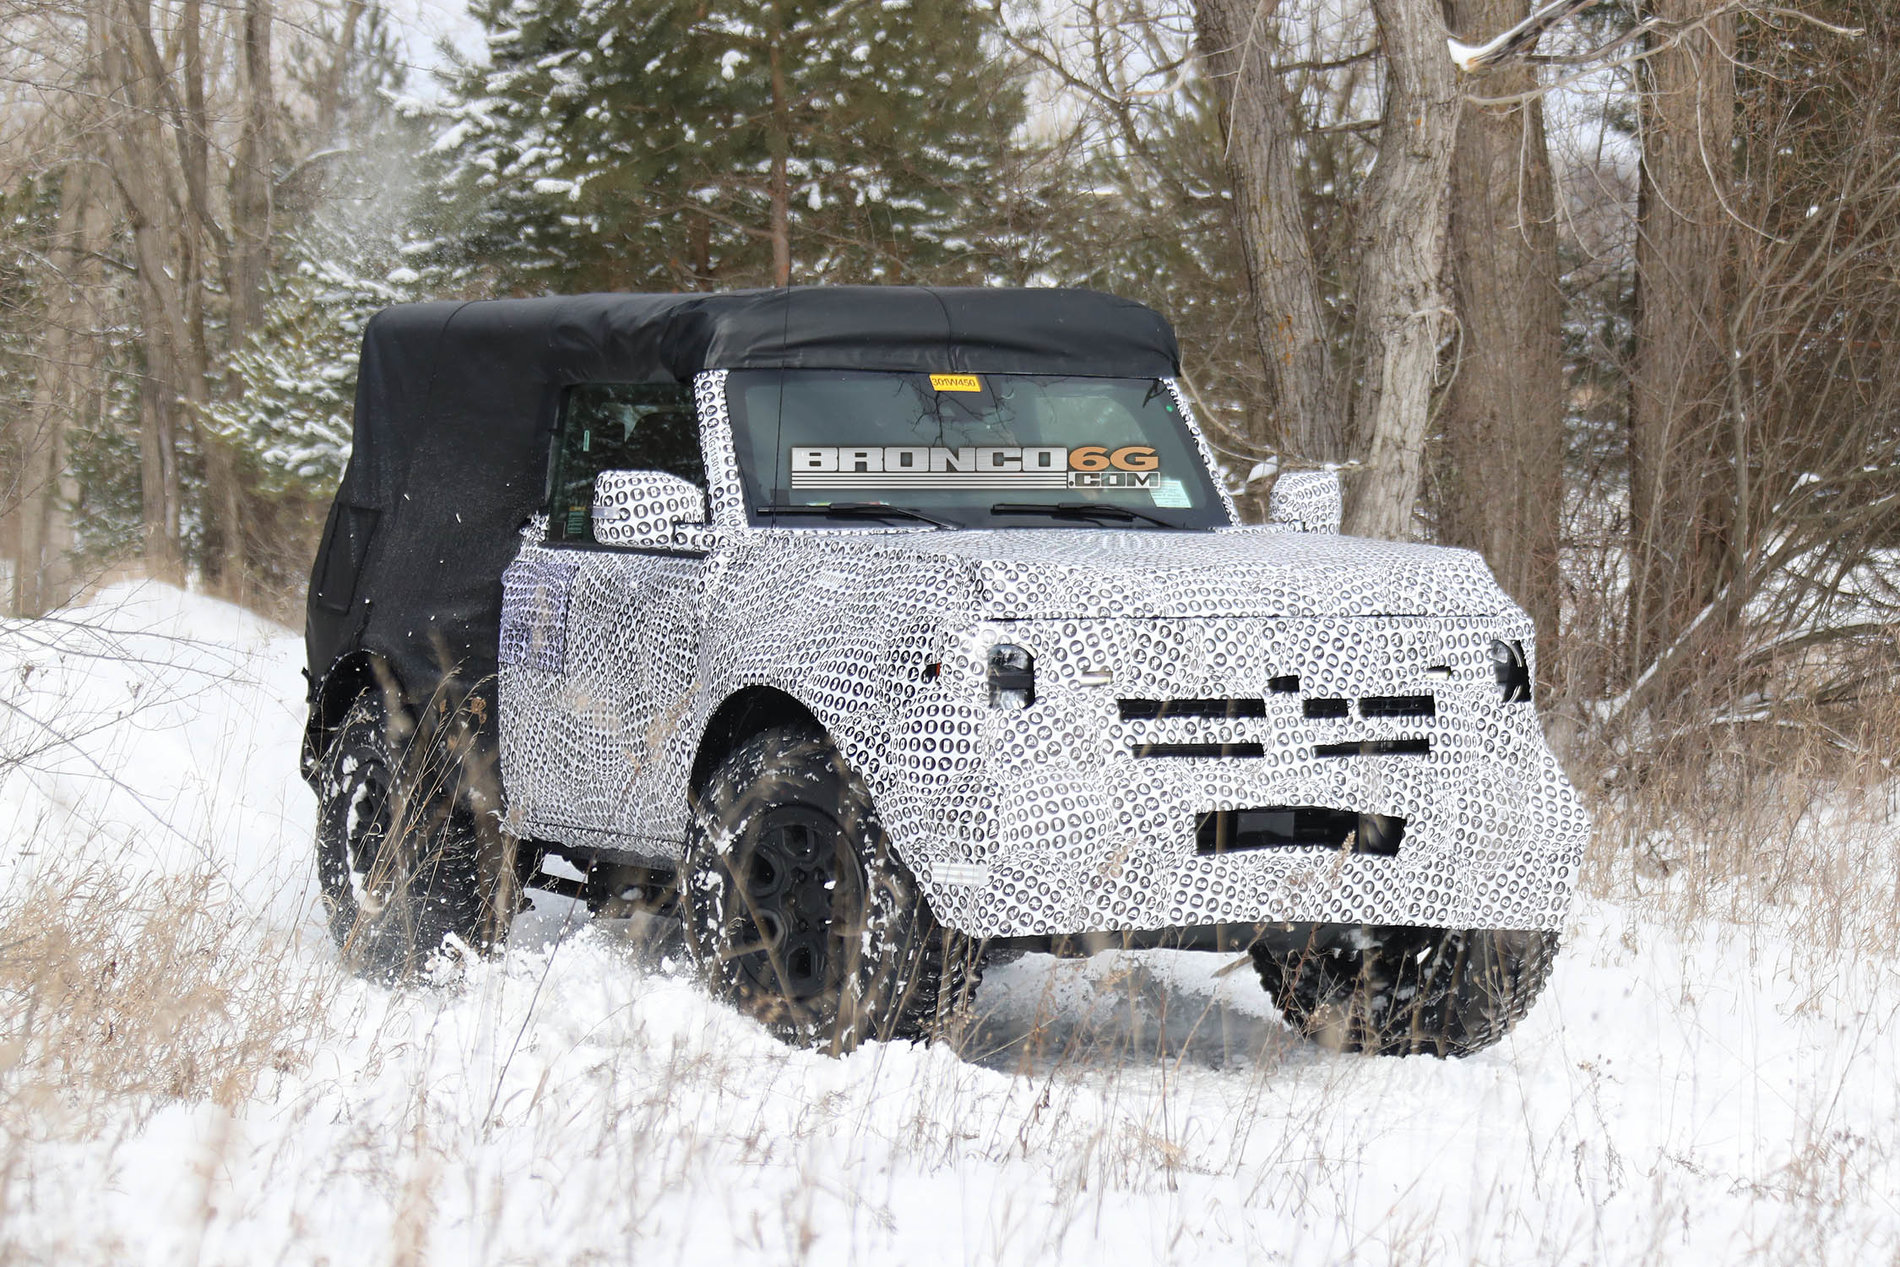 2021-Bronco_2door_OffRoad_008.jpg